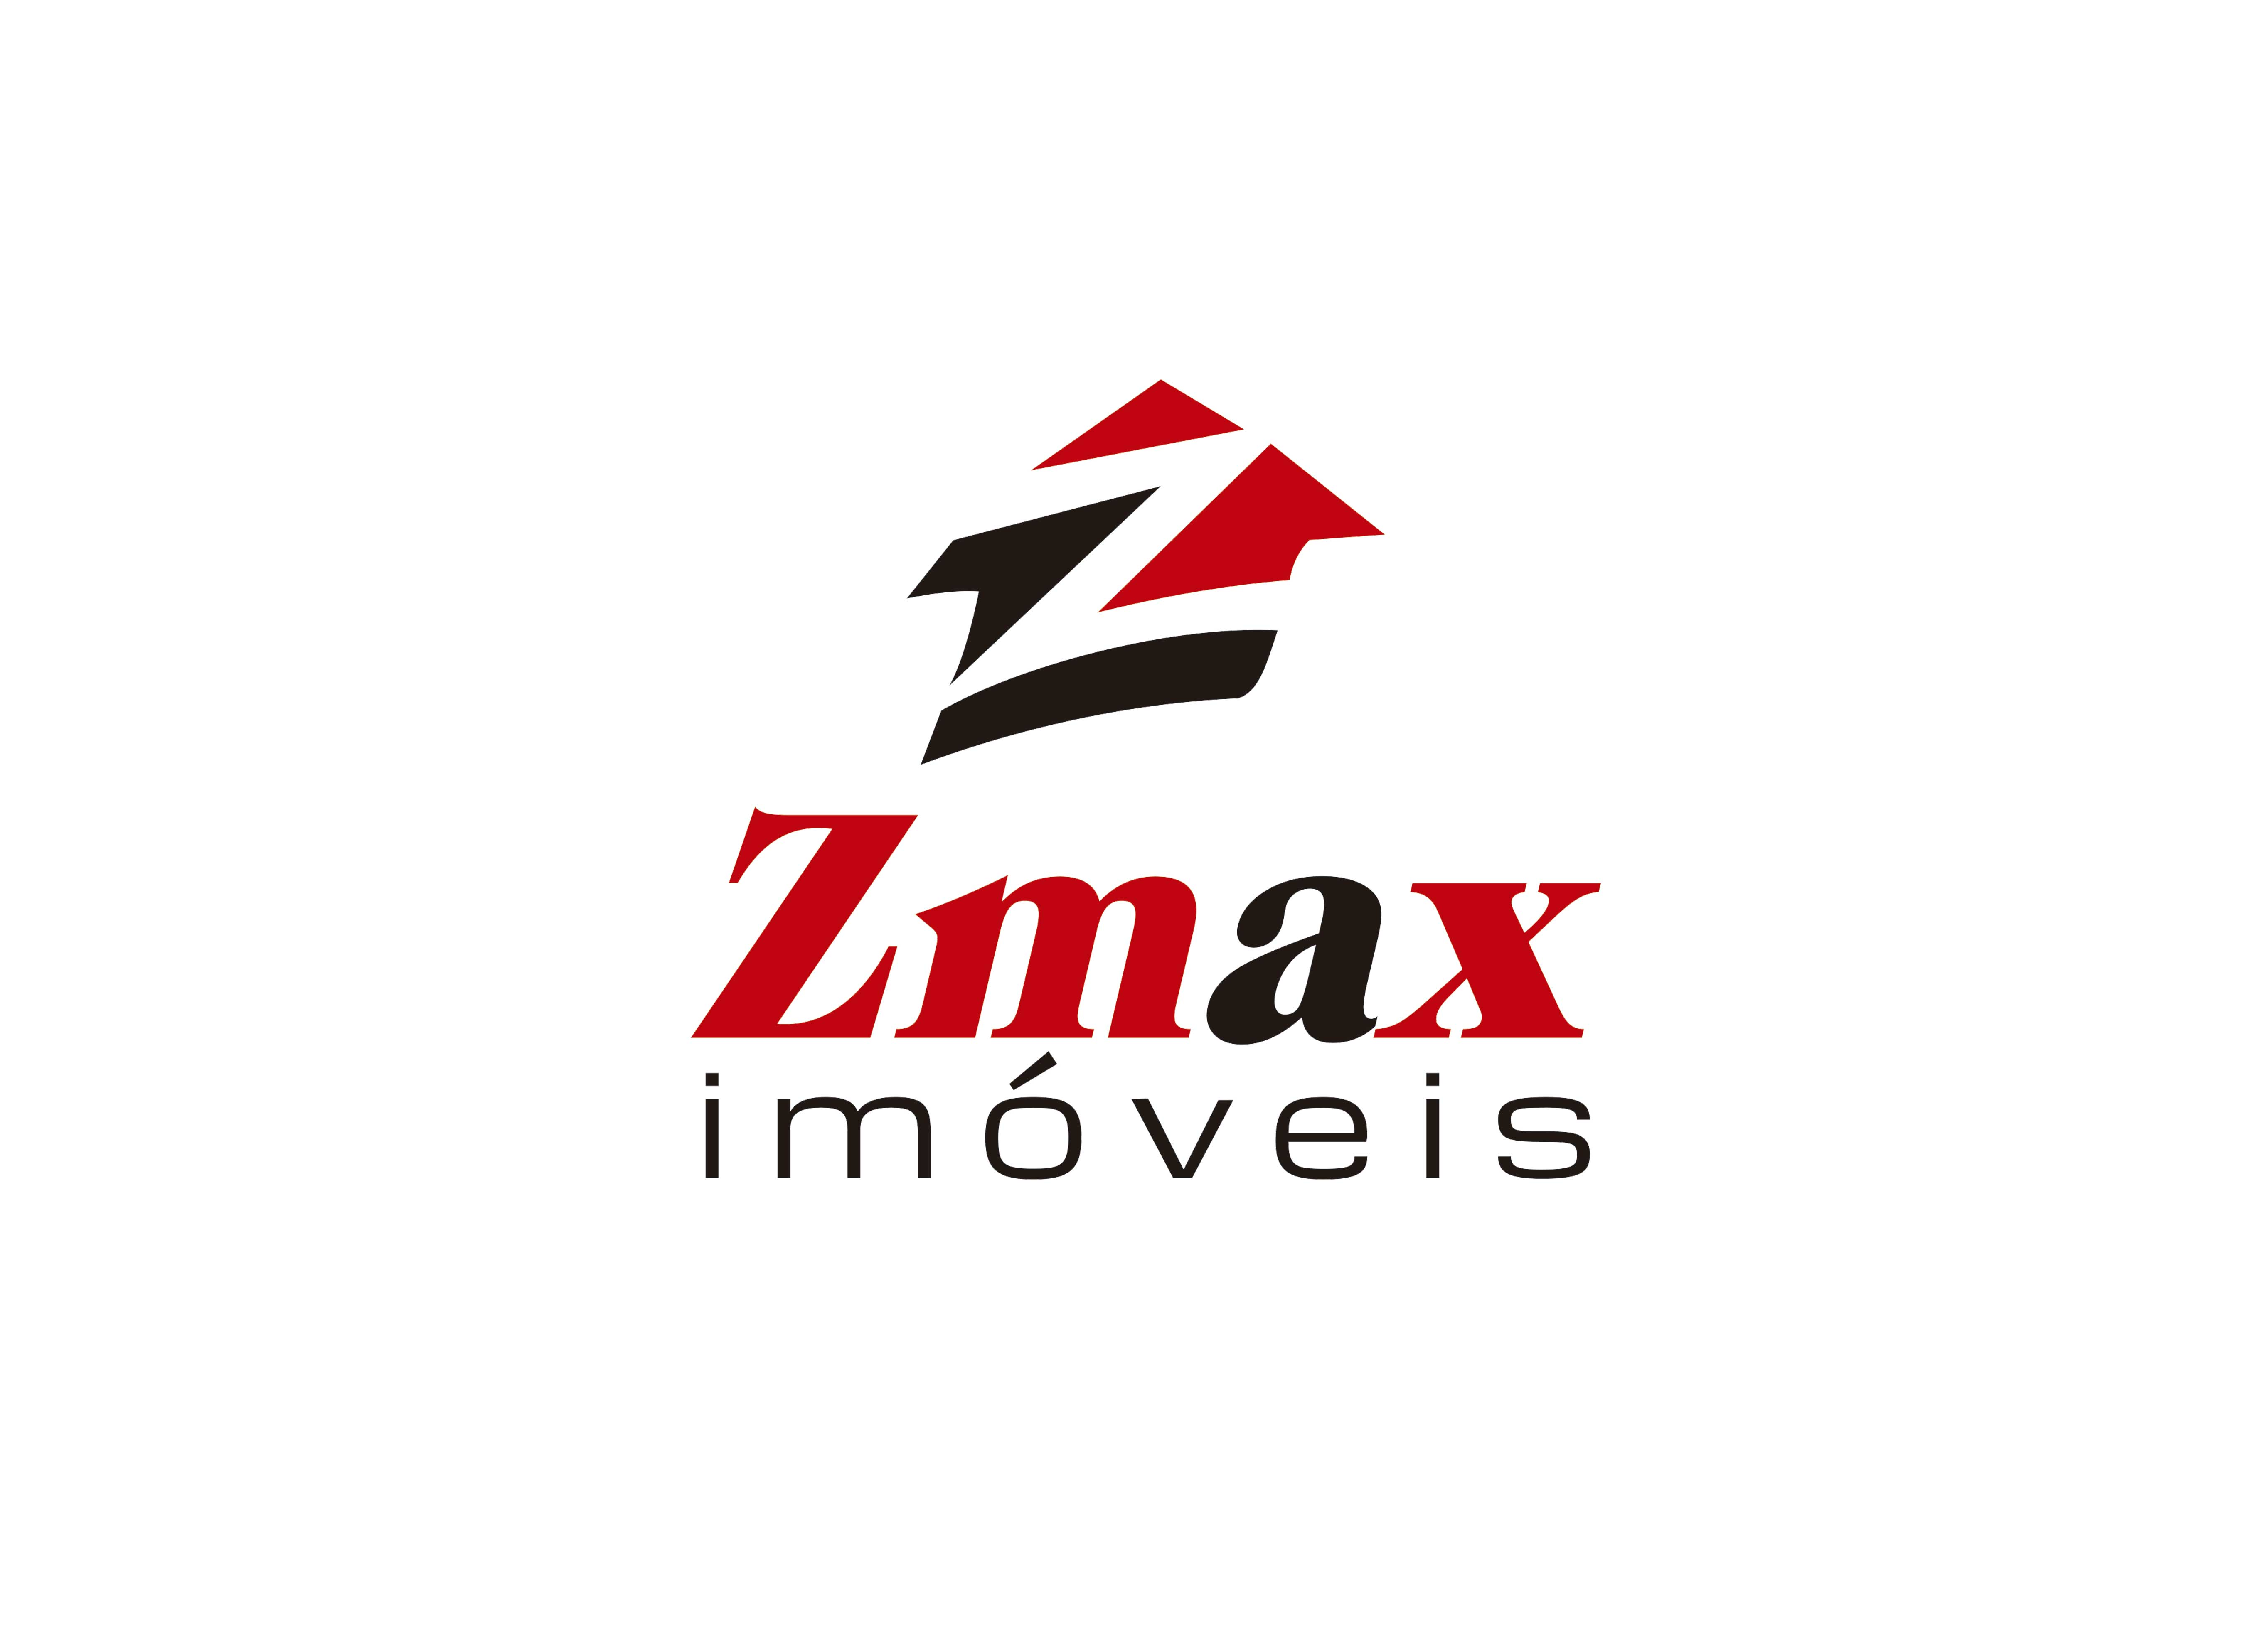 zamax-imoveis-drc-marketingdigital